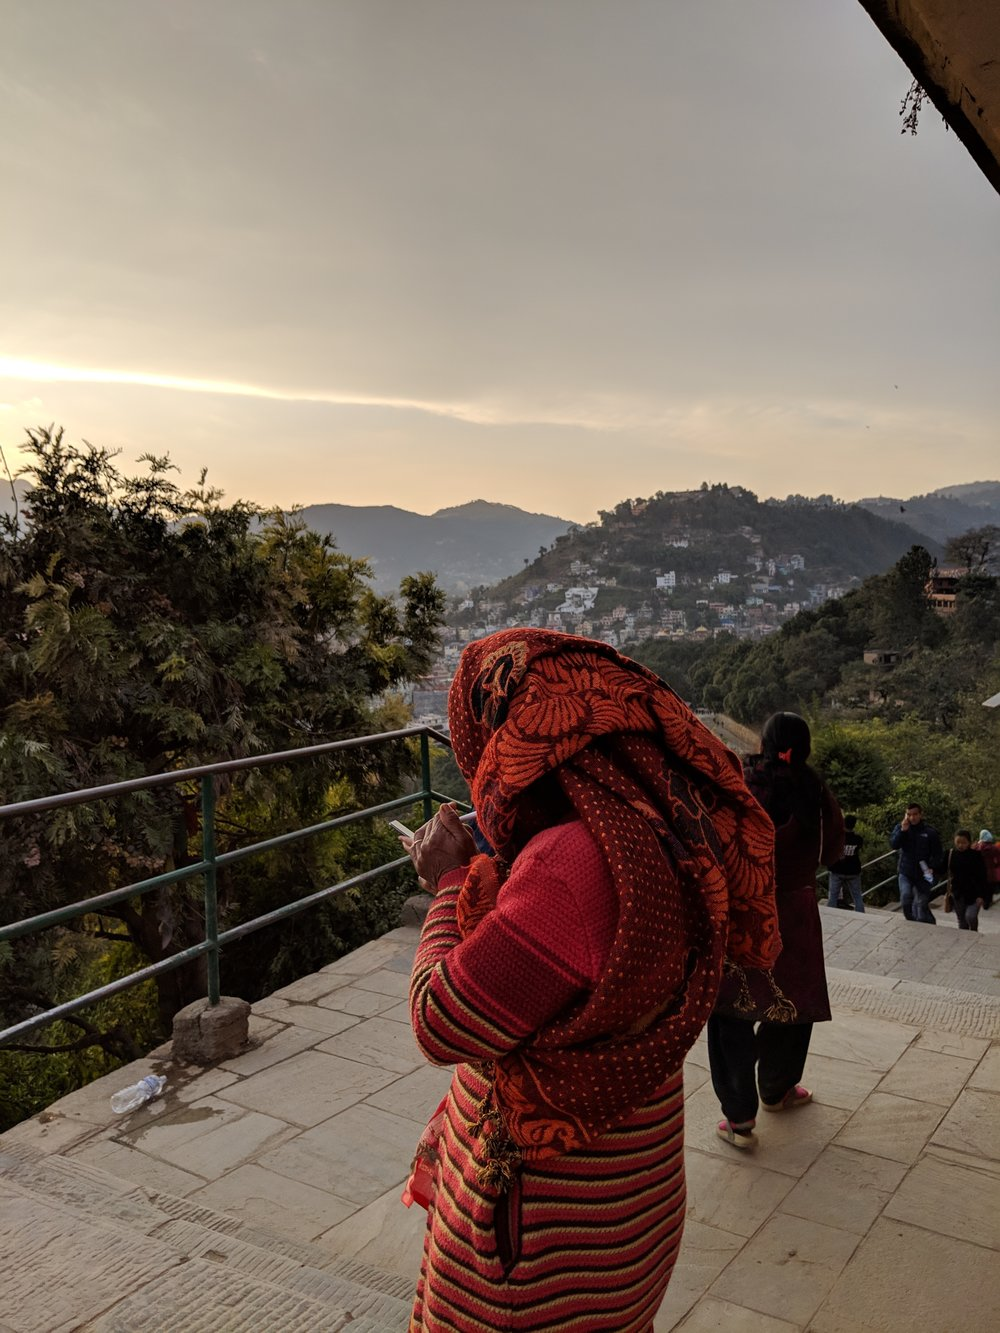 A Kathmandu resident taking in the overwhelmingly smoky sunset with a cigarette